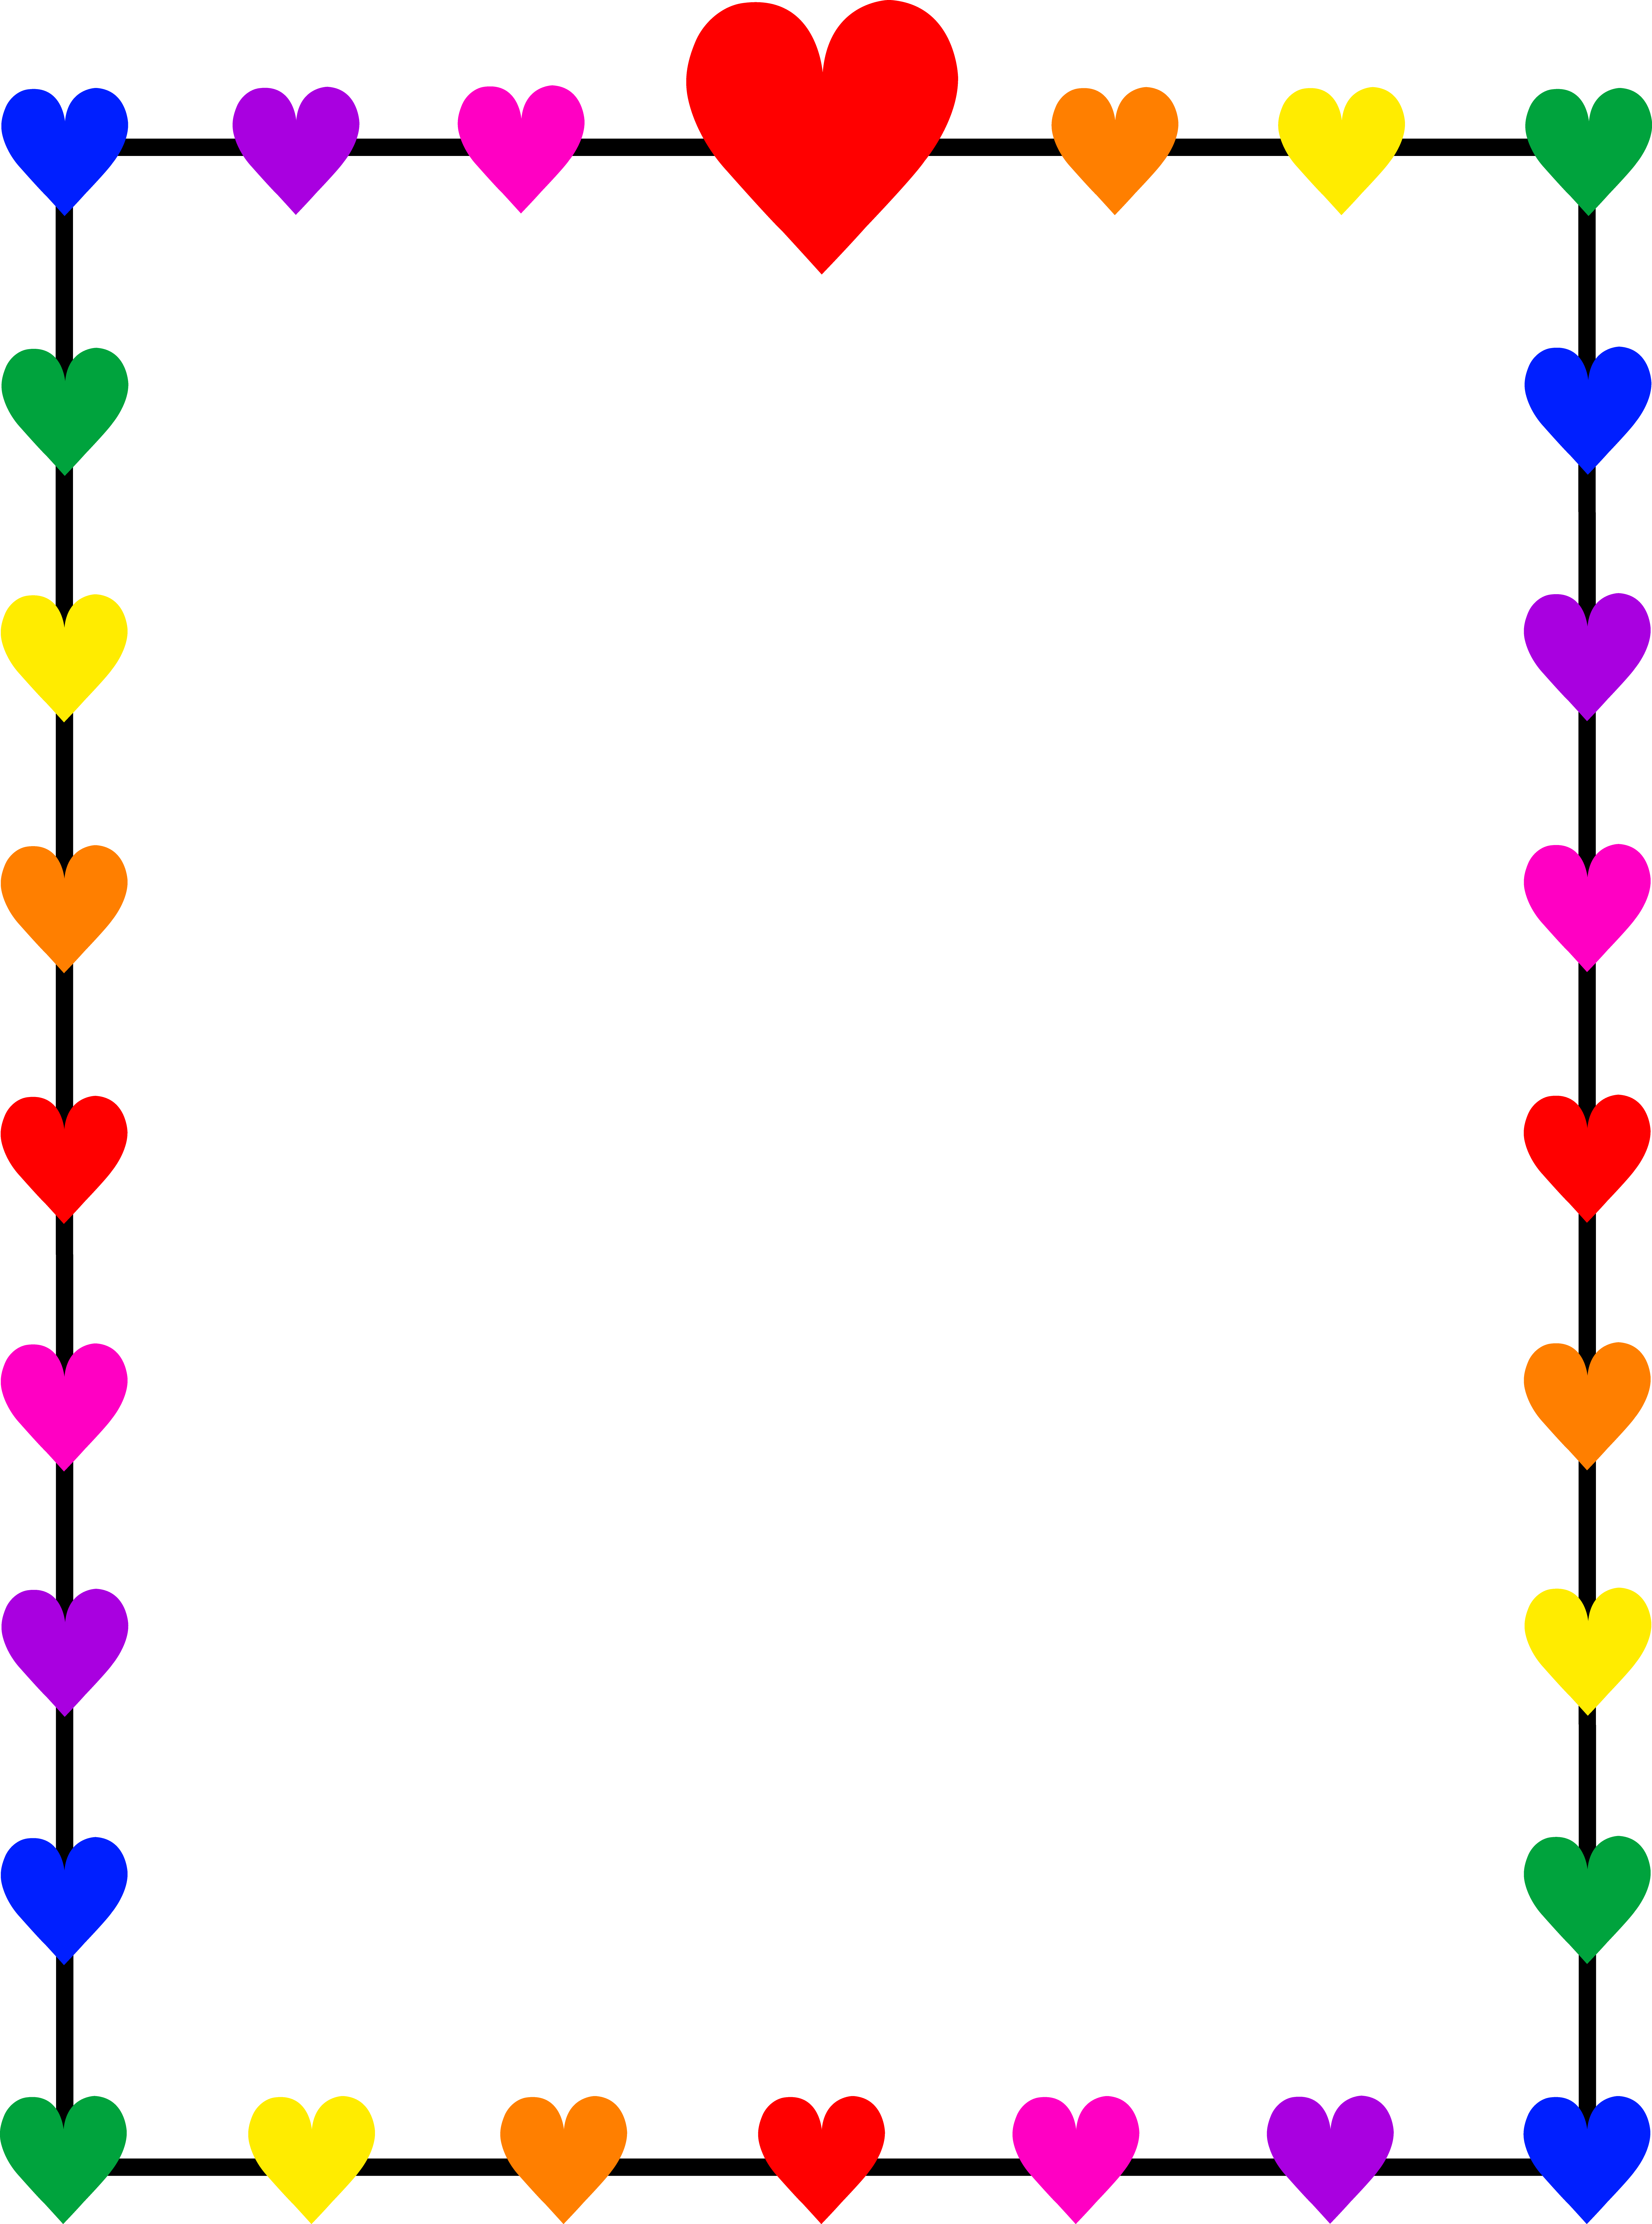 Heart border png. Borders and frames clip